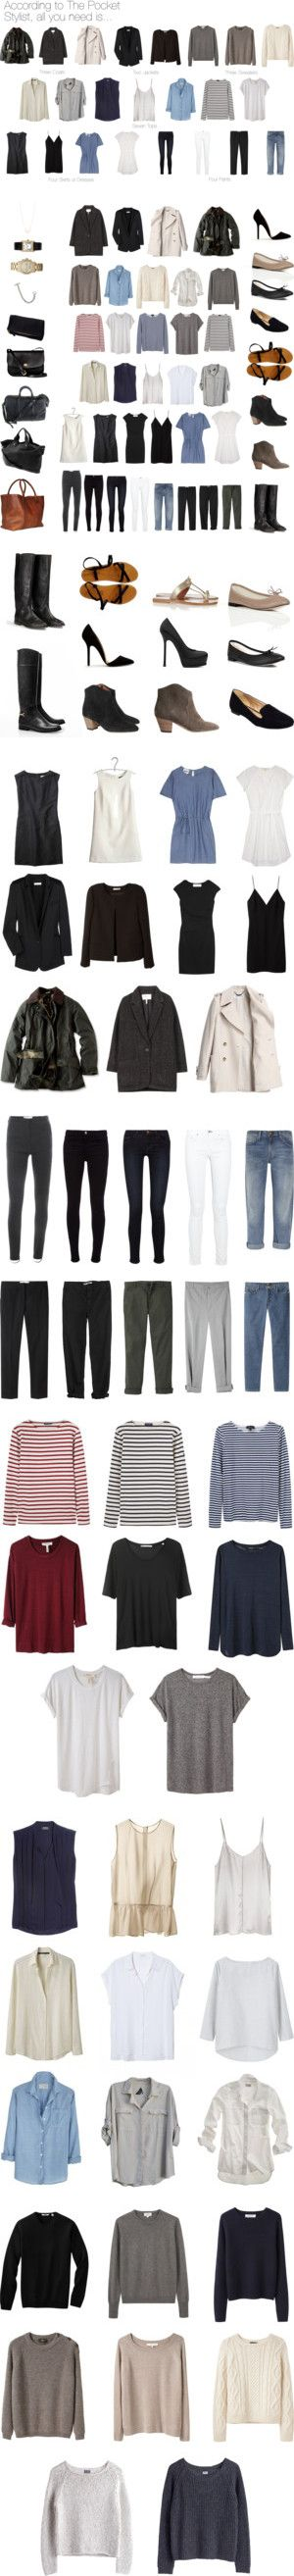 """Capsule Wardrobes"" by keelyhenesey ❤ liked on Polyvore"